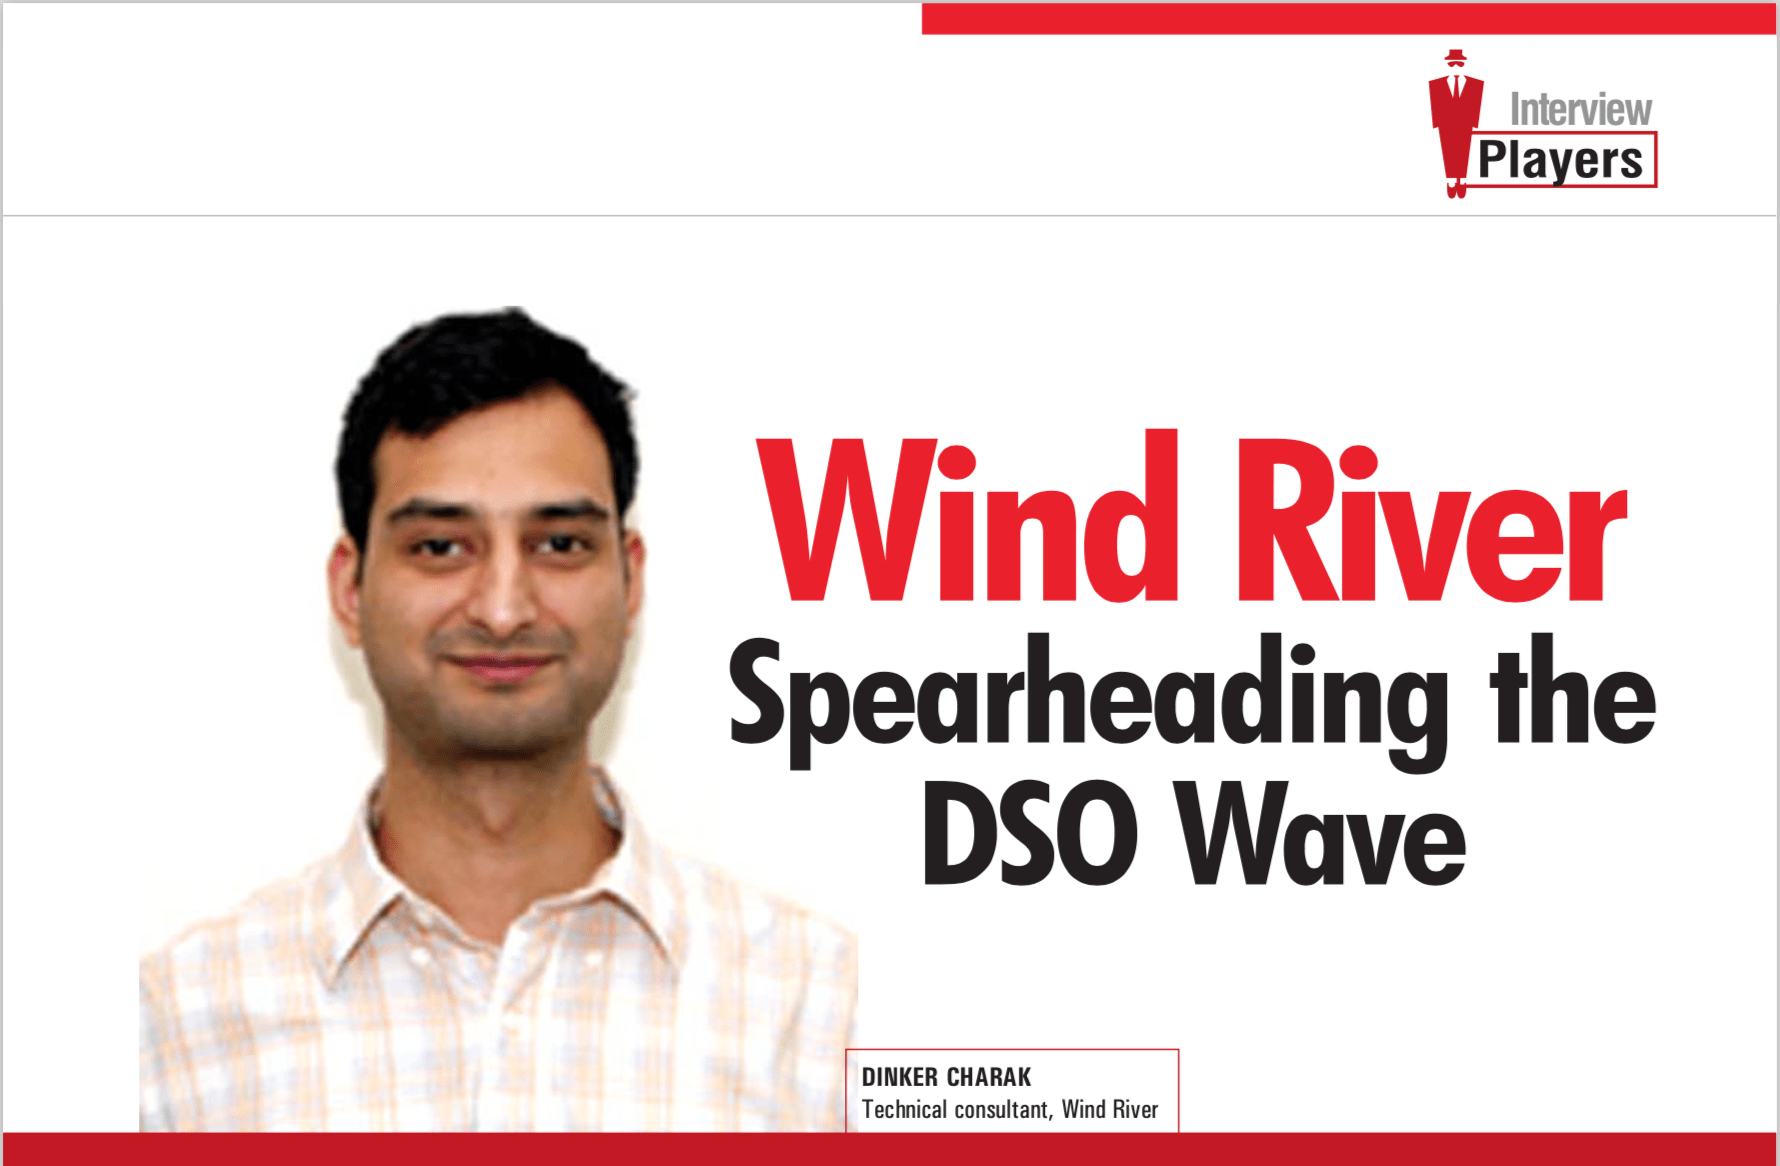 Spearheading the DSO Wave